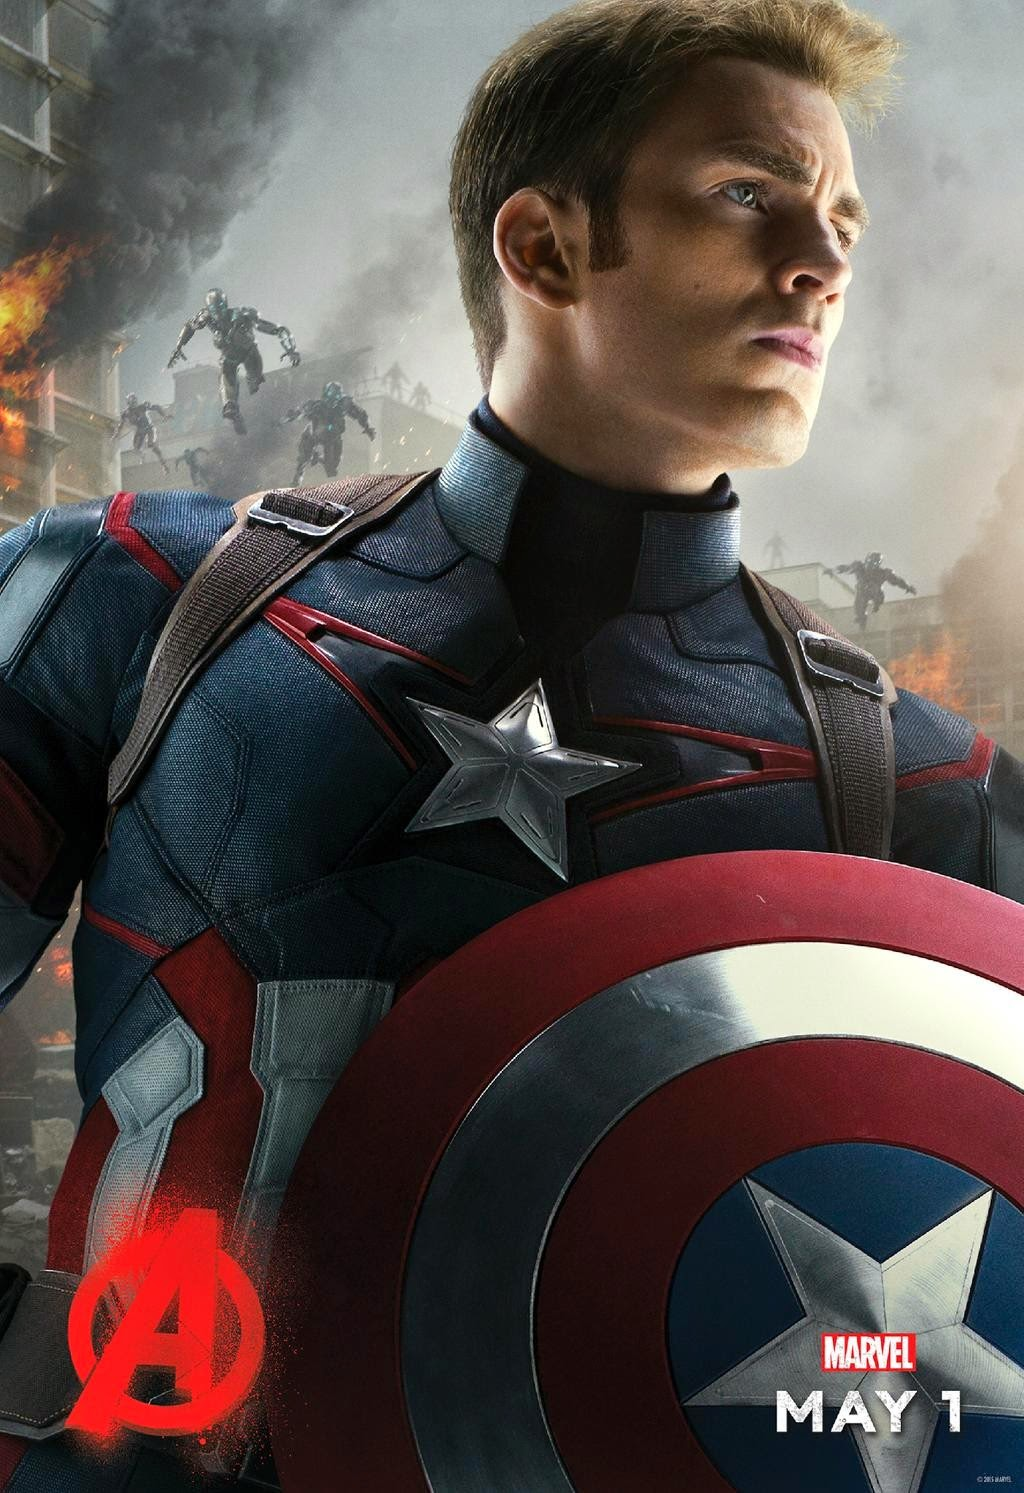 Marvel's Avengers Age of Ultron Character Movie Poster Set - Chris Evans as Captain America